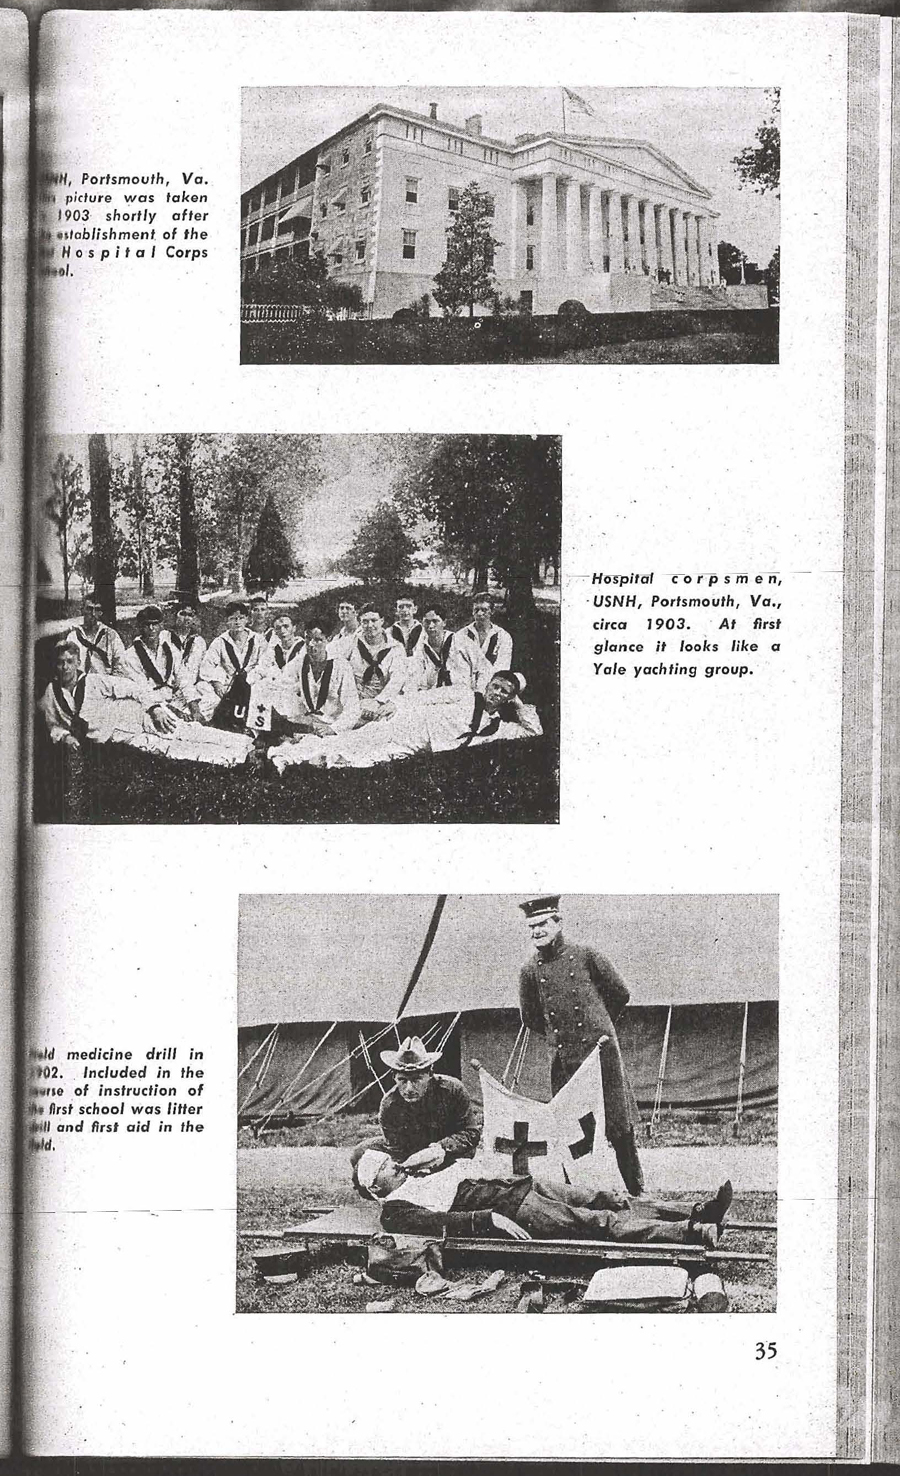 Development of Service Instruction (Naval Hospital Corps Training School) Page 35